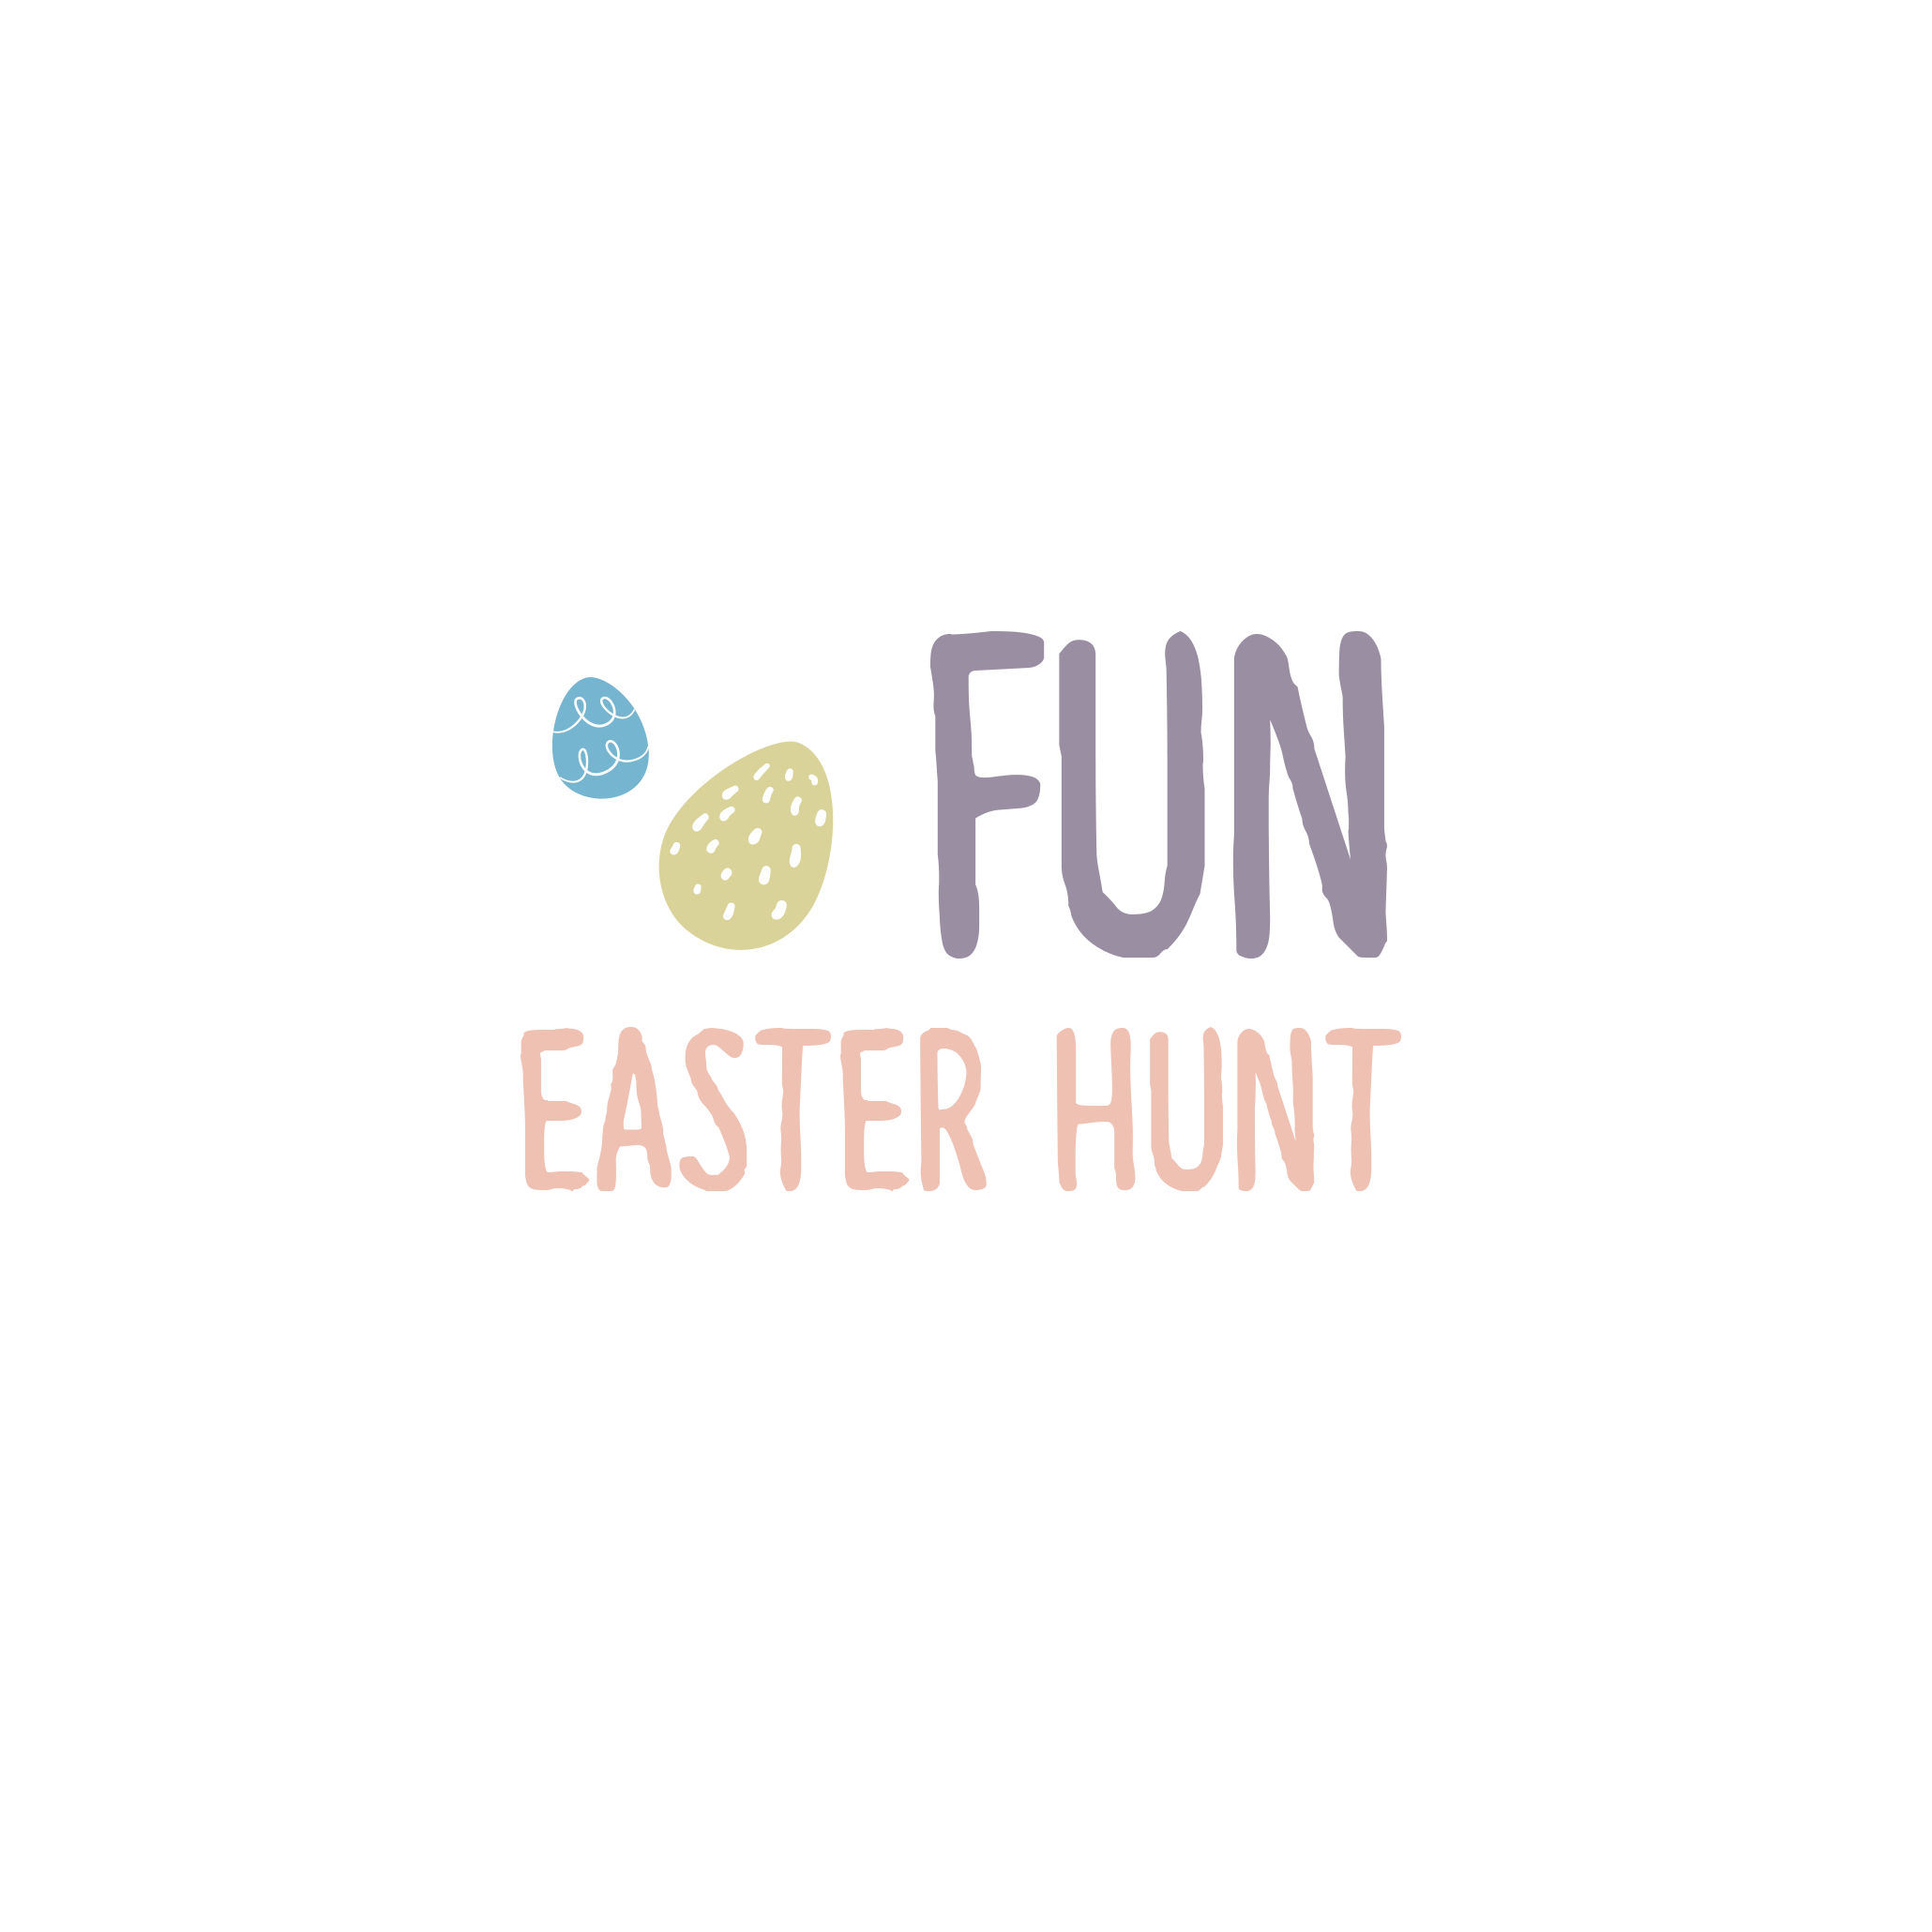 English version of the logo of the fun easter hunt document made by Les Belles Combines